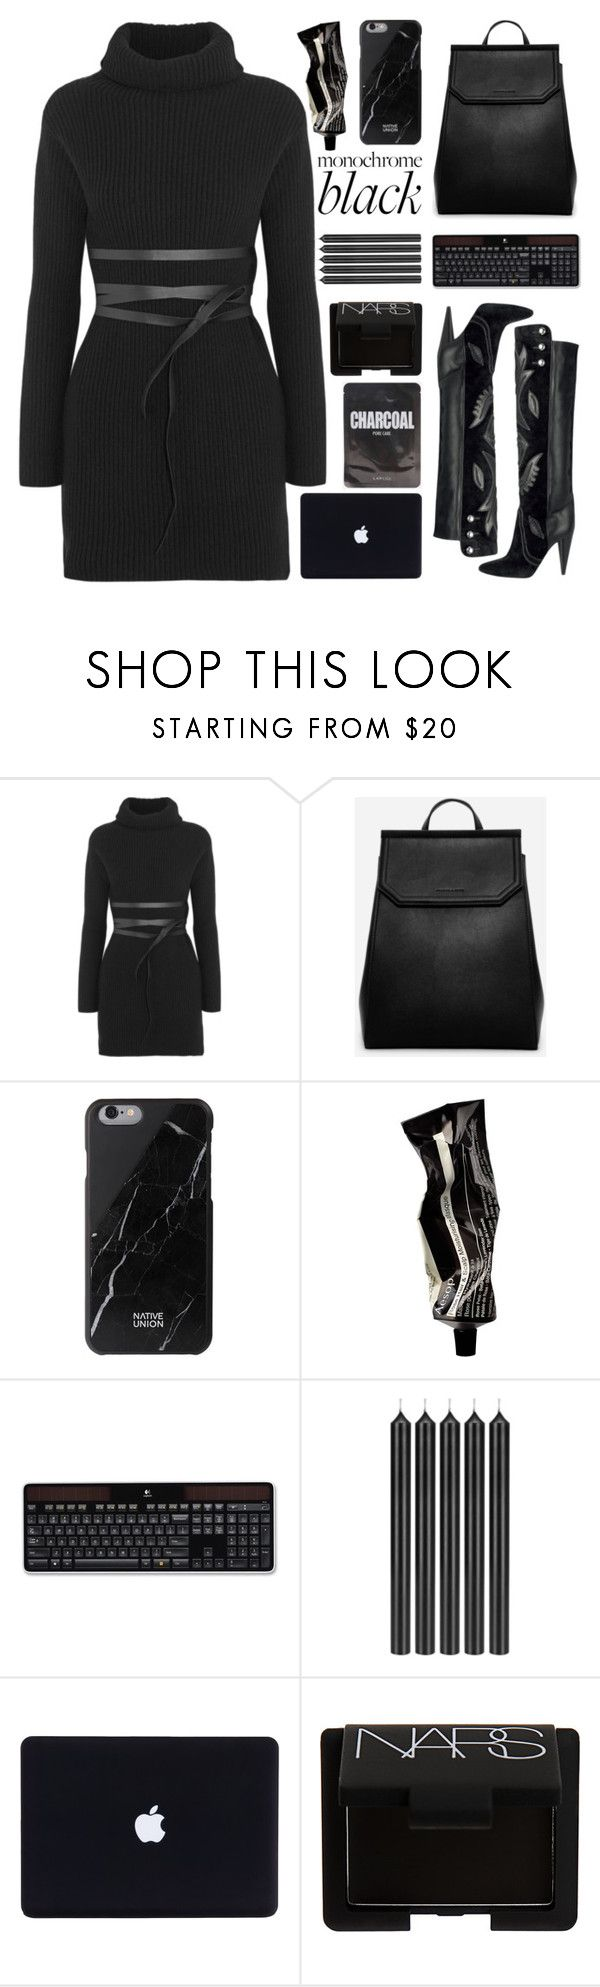 """Monochrome: All Black Everything"" by barbarela11 ❤ liked on Polyvore featuring Valentino, CHARLES & KEITH, Native Union, Aesop, Logitech, Tom Dixon and NARS Cosmetics"